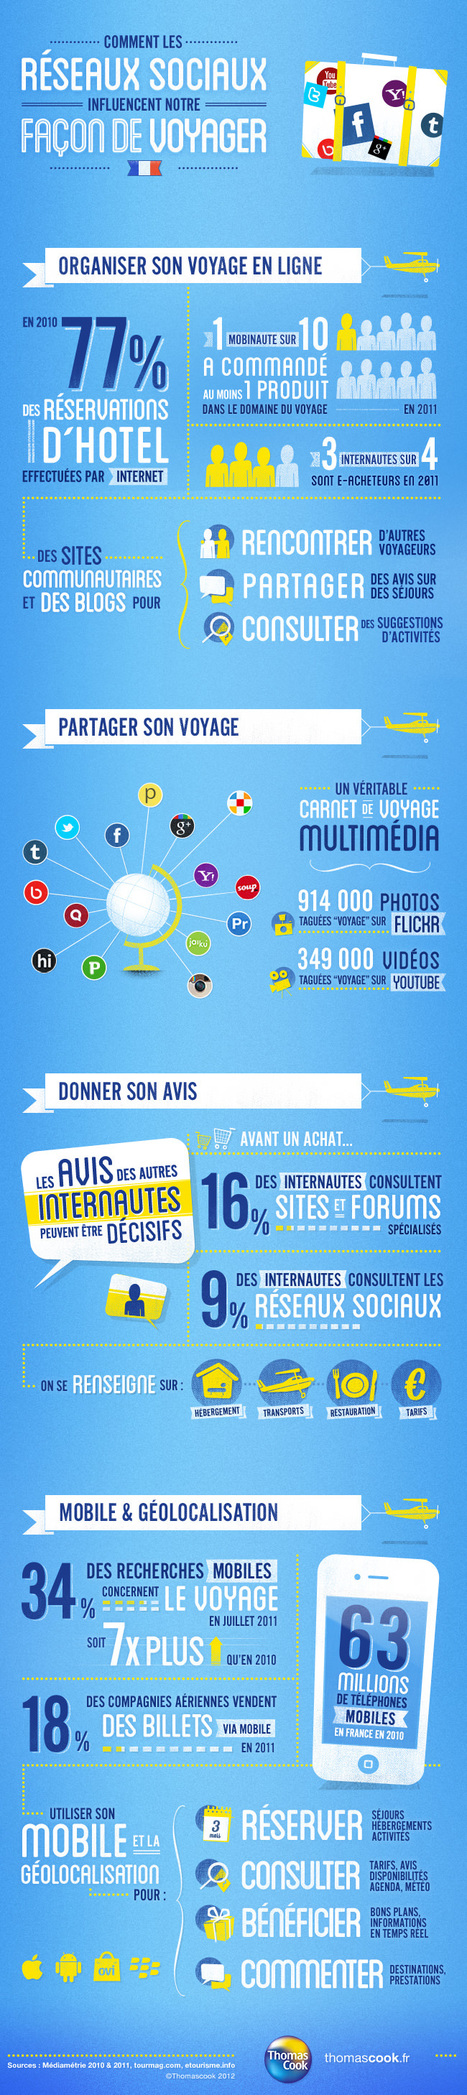 How Social Media influences your travel plans... | infographics2day | Scoop.it